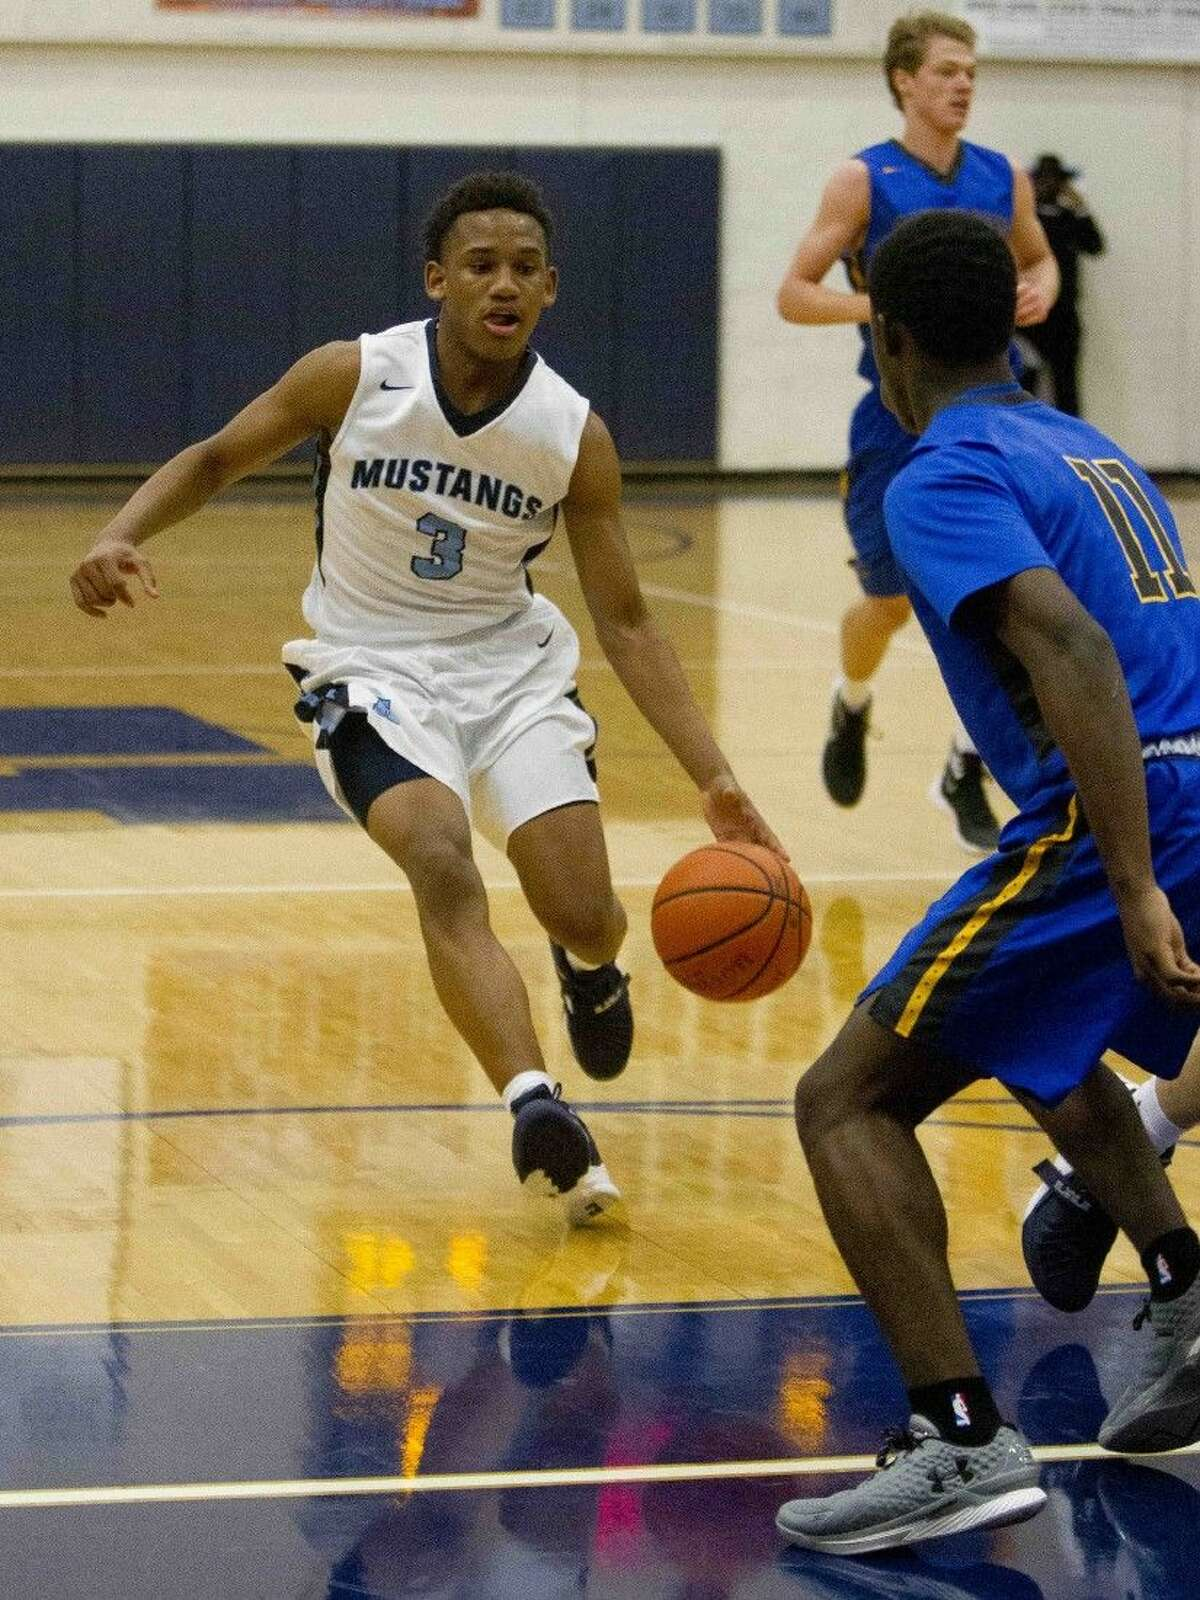 Kingwood guard Brandon Burrell dribbles toward the paint during a basketball game at the Insperity Holiday Classic at Kingwood High School Monday, Dec. 28, 2015. Go to HCNpics.com to purchase this image and view more photos from the tournament.